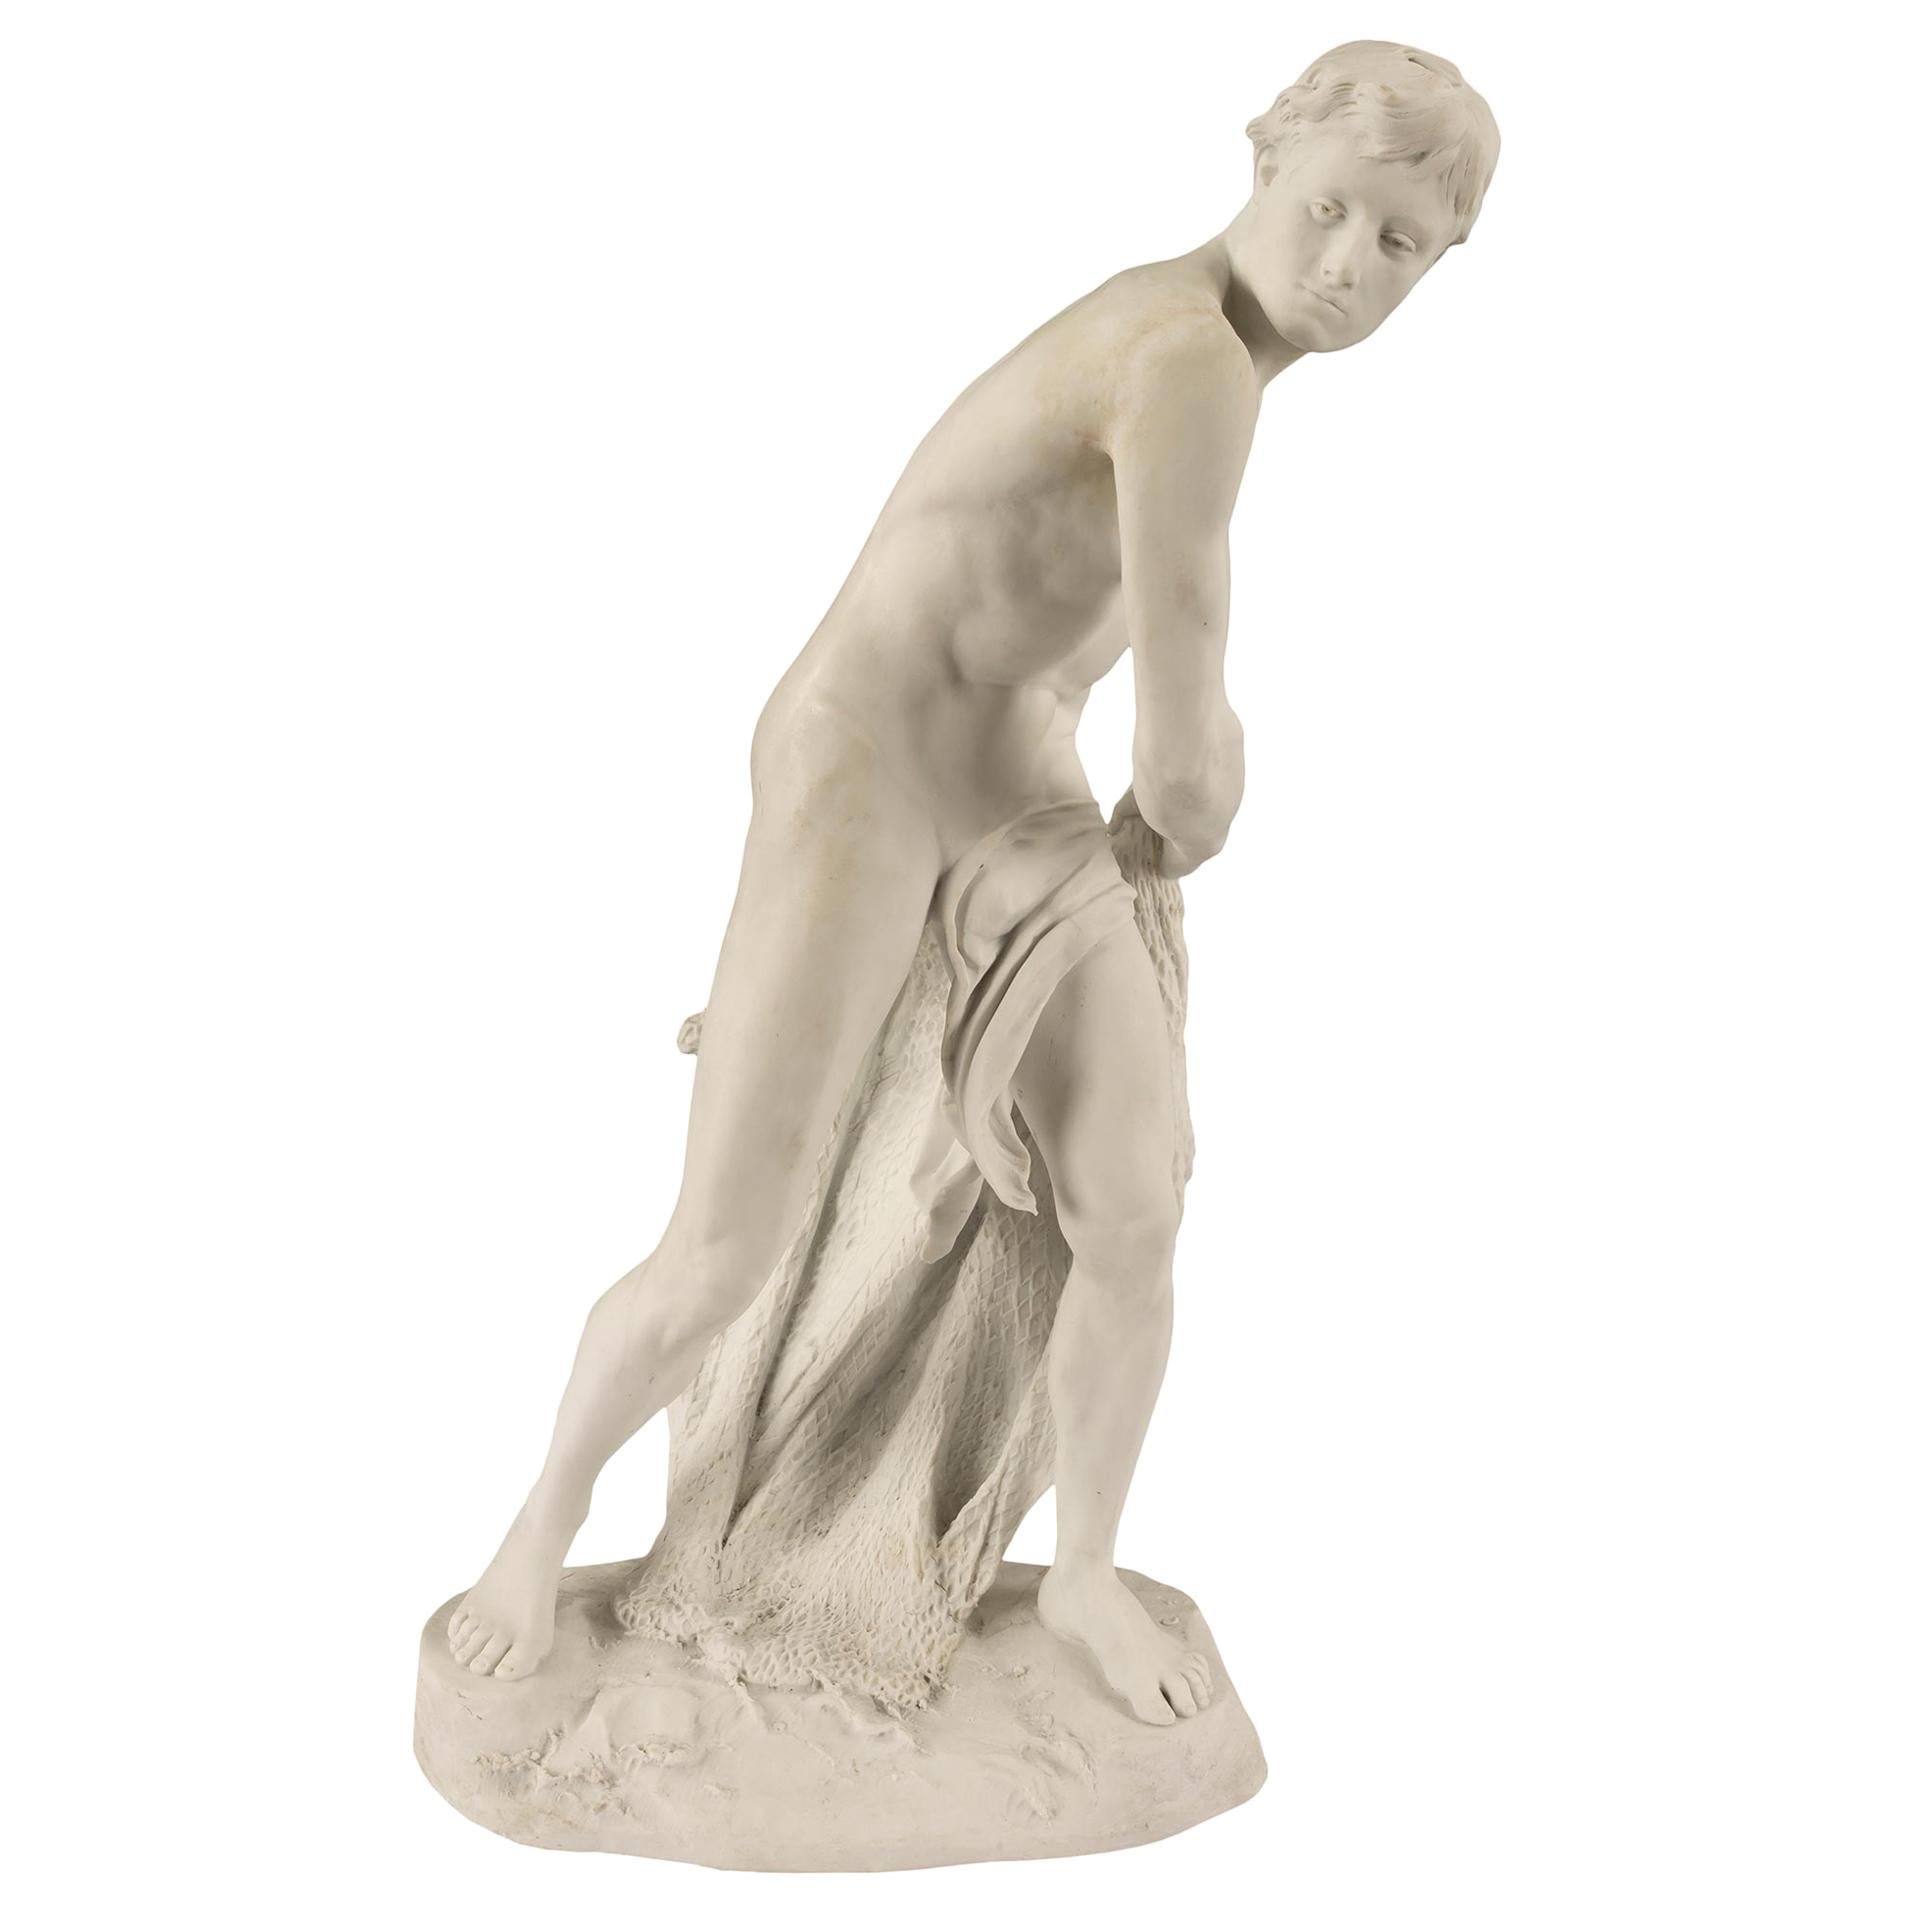 French Louis XVI Style Biscuit De Sèvres Porcelain Statue of a Fisher